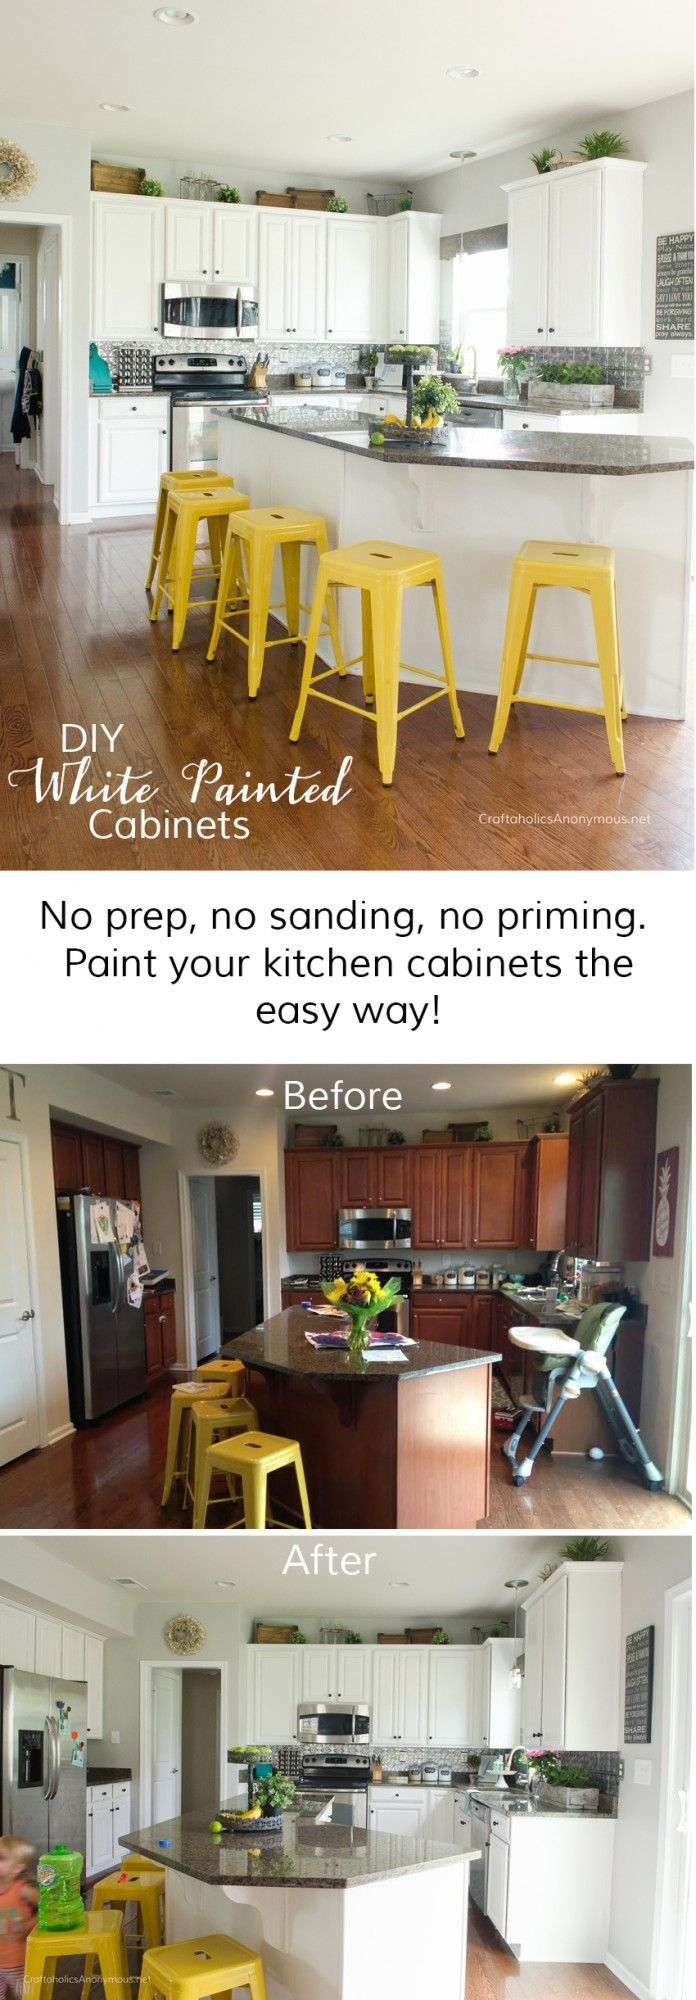 How to paint Kitchen Cabinets white with no prep using chalk paint powder. Hands down the easiest way to paint cabinets and furniture!